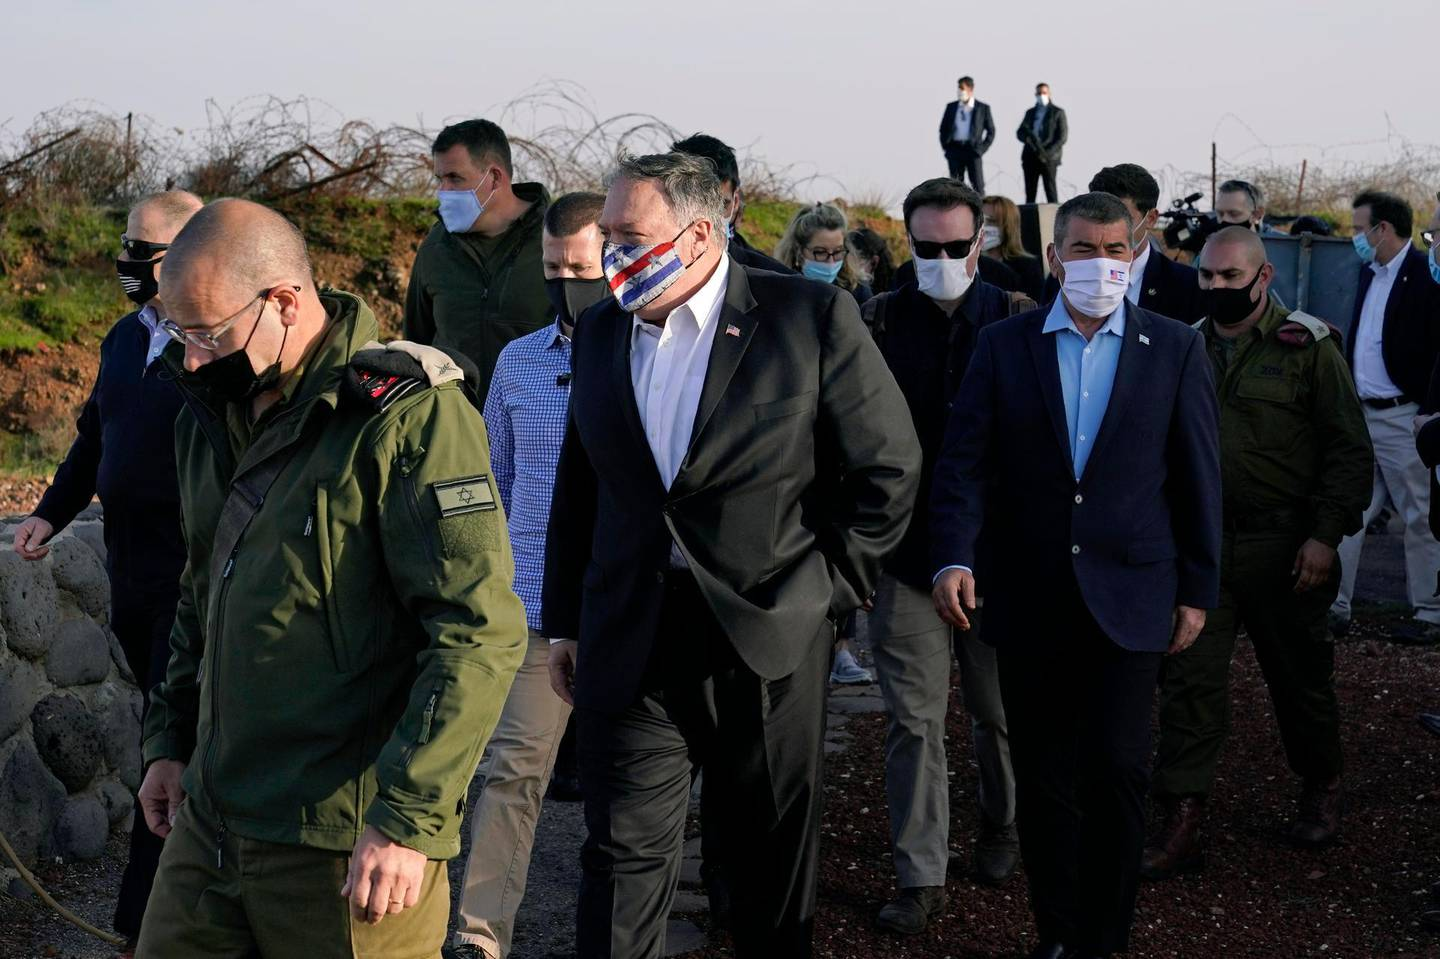 Secretary of State Mike Pompeo, center, arrives for a security briefing on Mount Bental in the Israeli-controlled Golan Heights, near the Israeli-Syrian border, Thursday, Nov. 19, 2020. (AP Photo/Patrick Semansky, Pool)